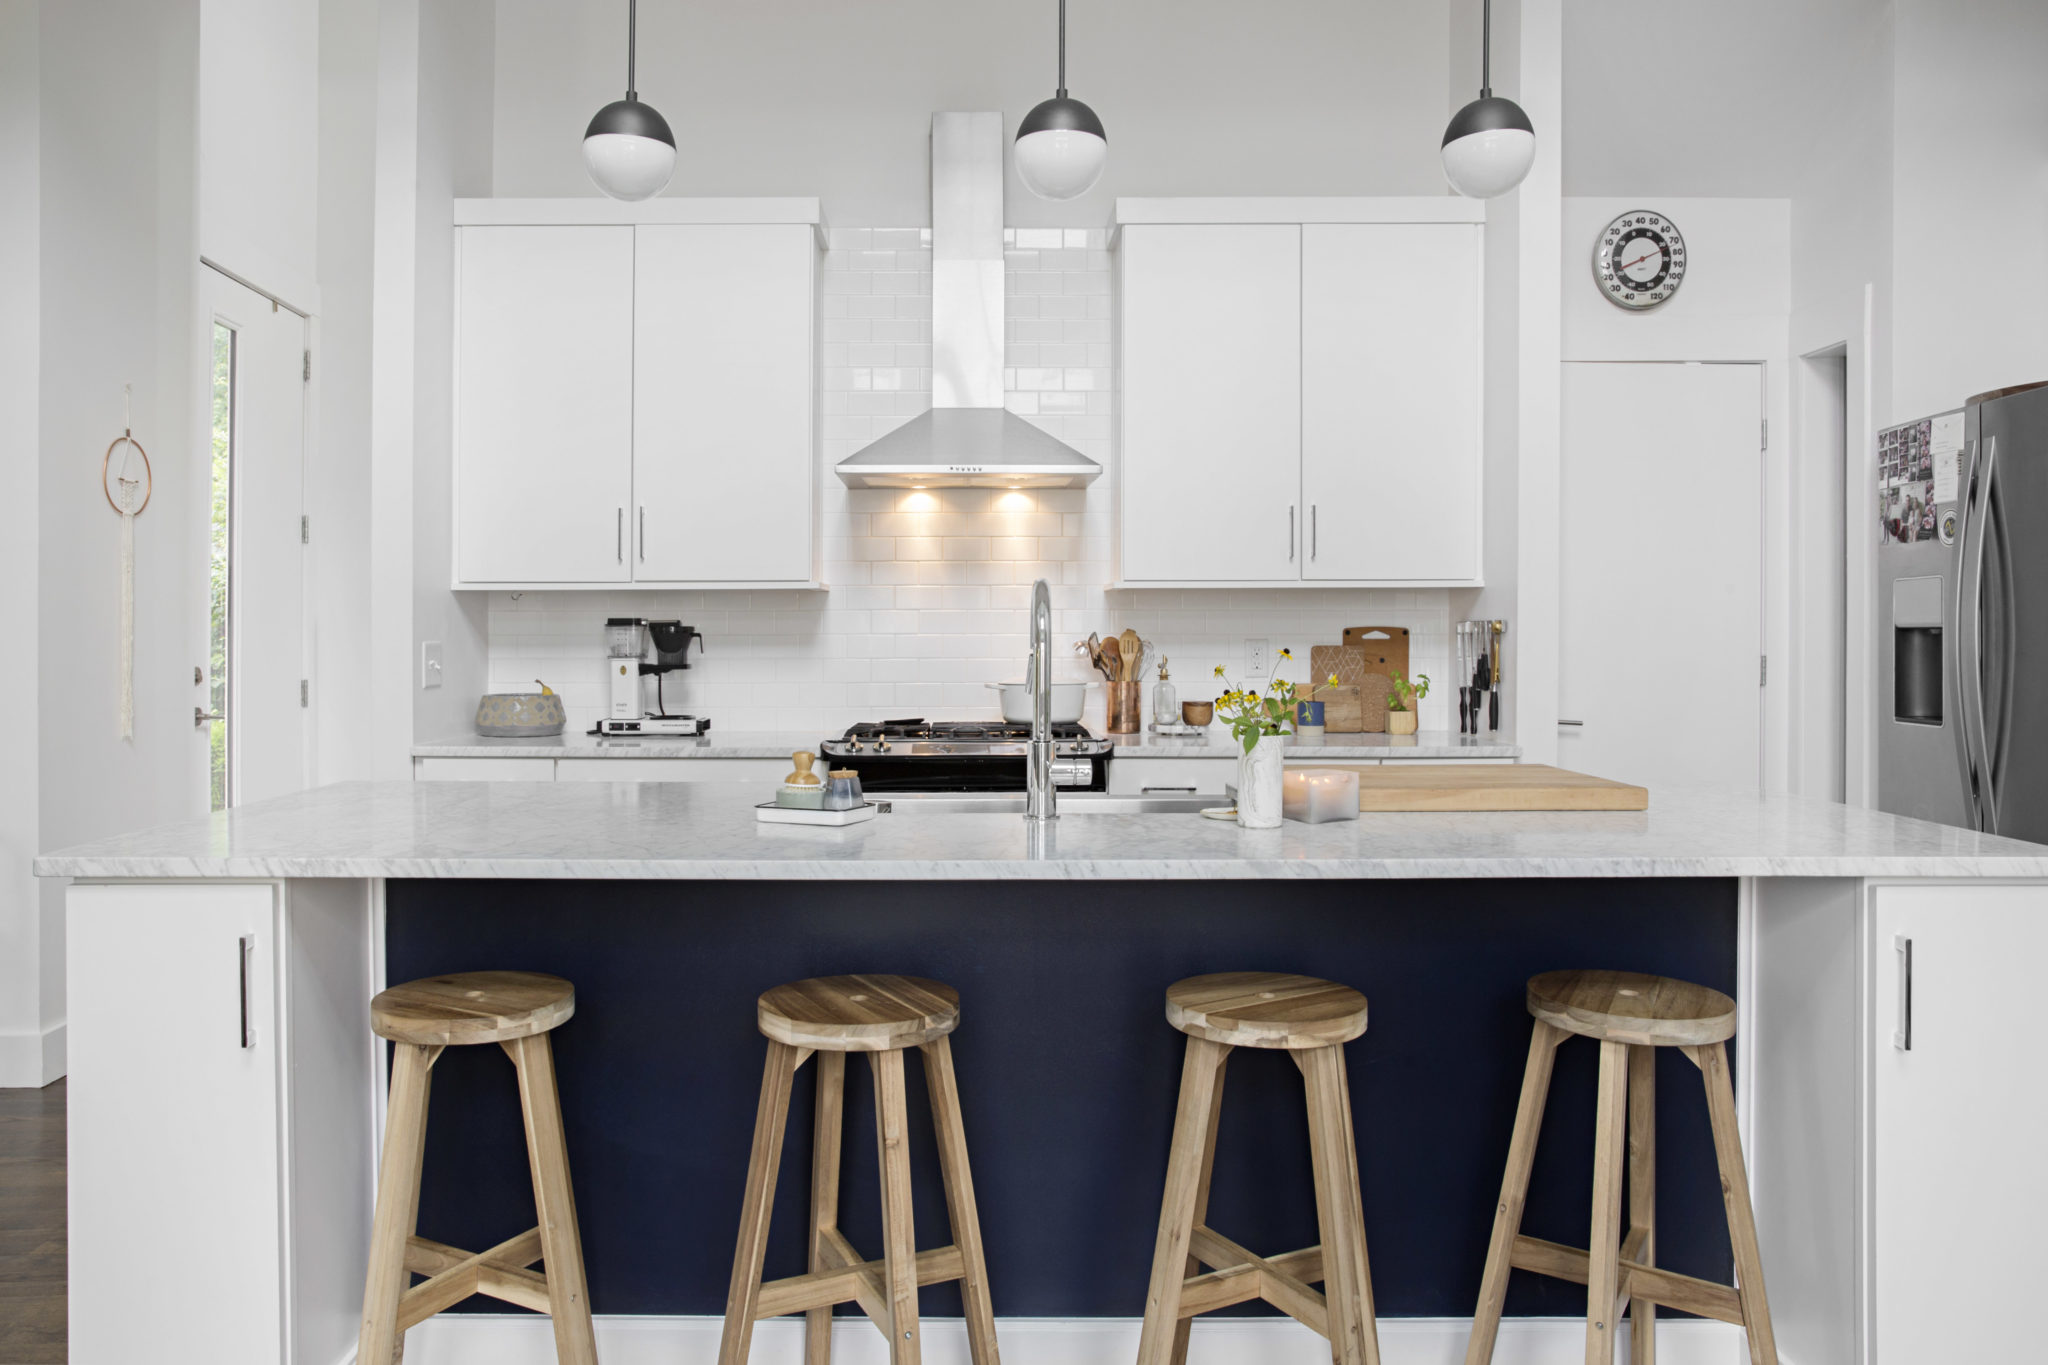 These Are The Top Kitchen Trends For 2018 | Hanley Wood | Design, Kitchen,  Housing Trends, Remodeling Trends